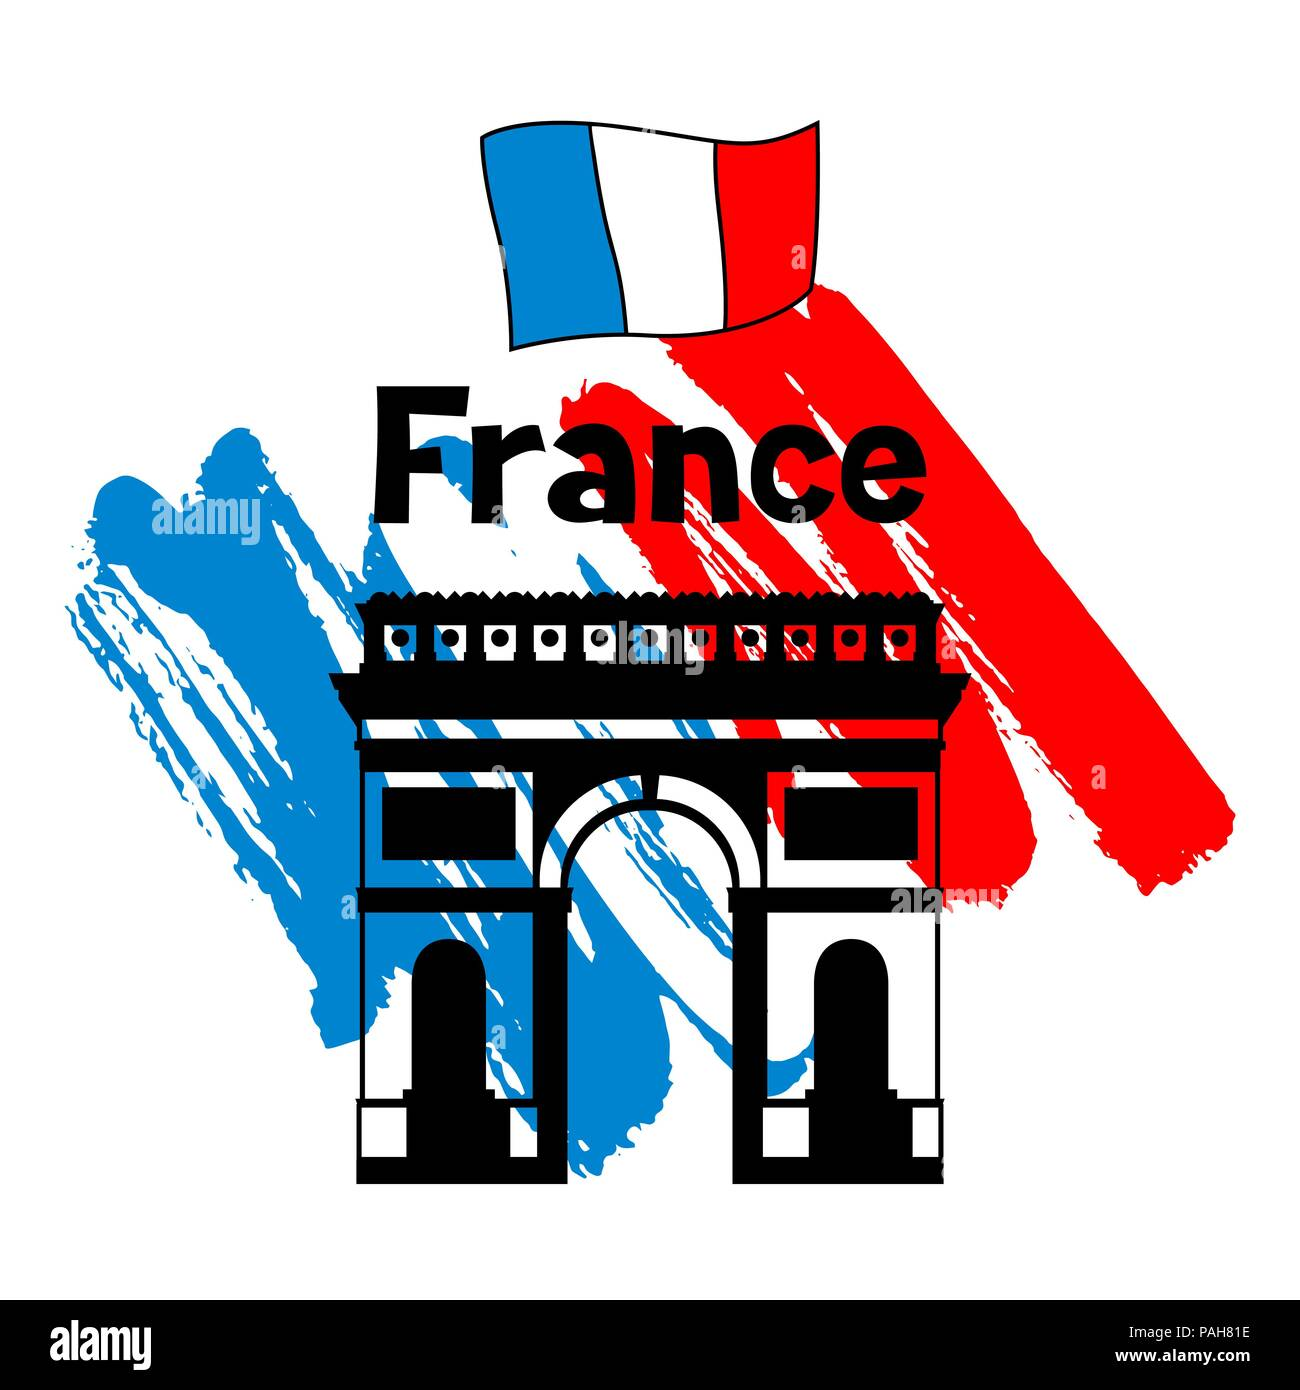 France background design. - Stock Image